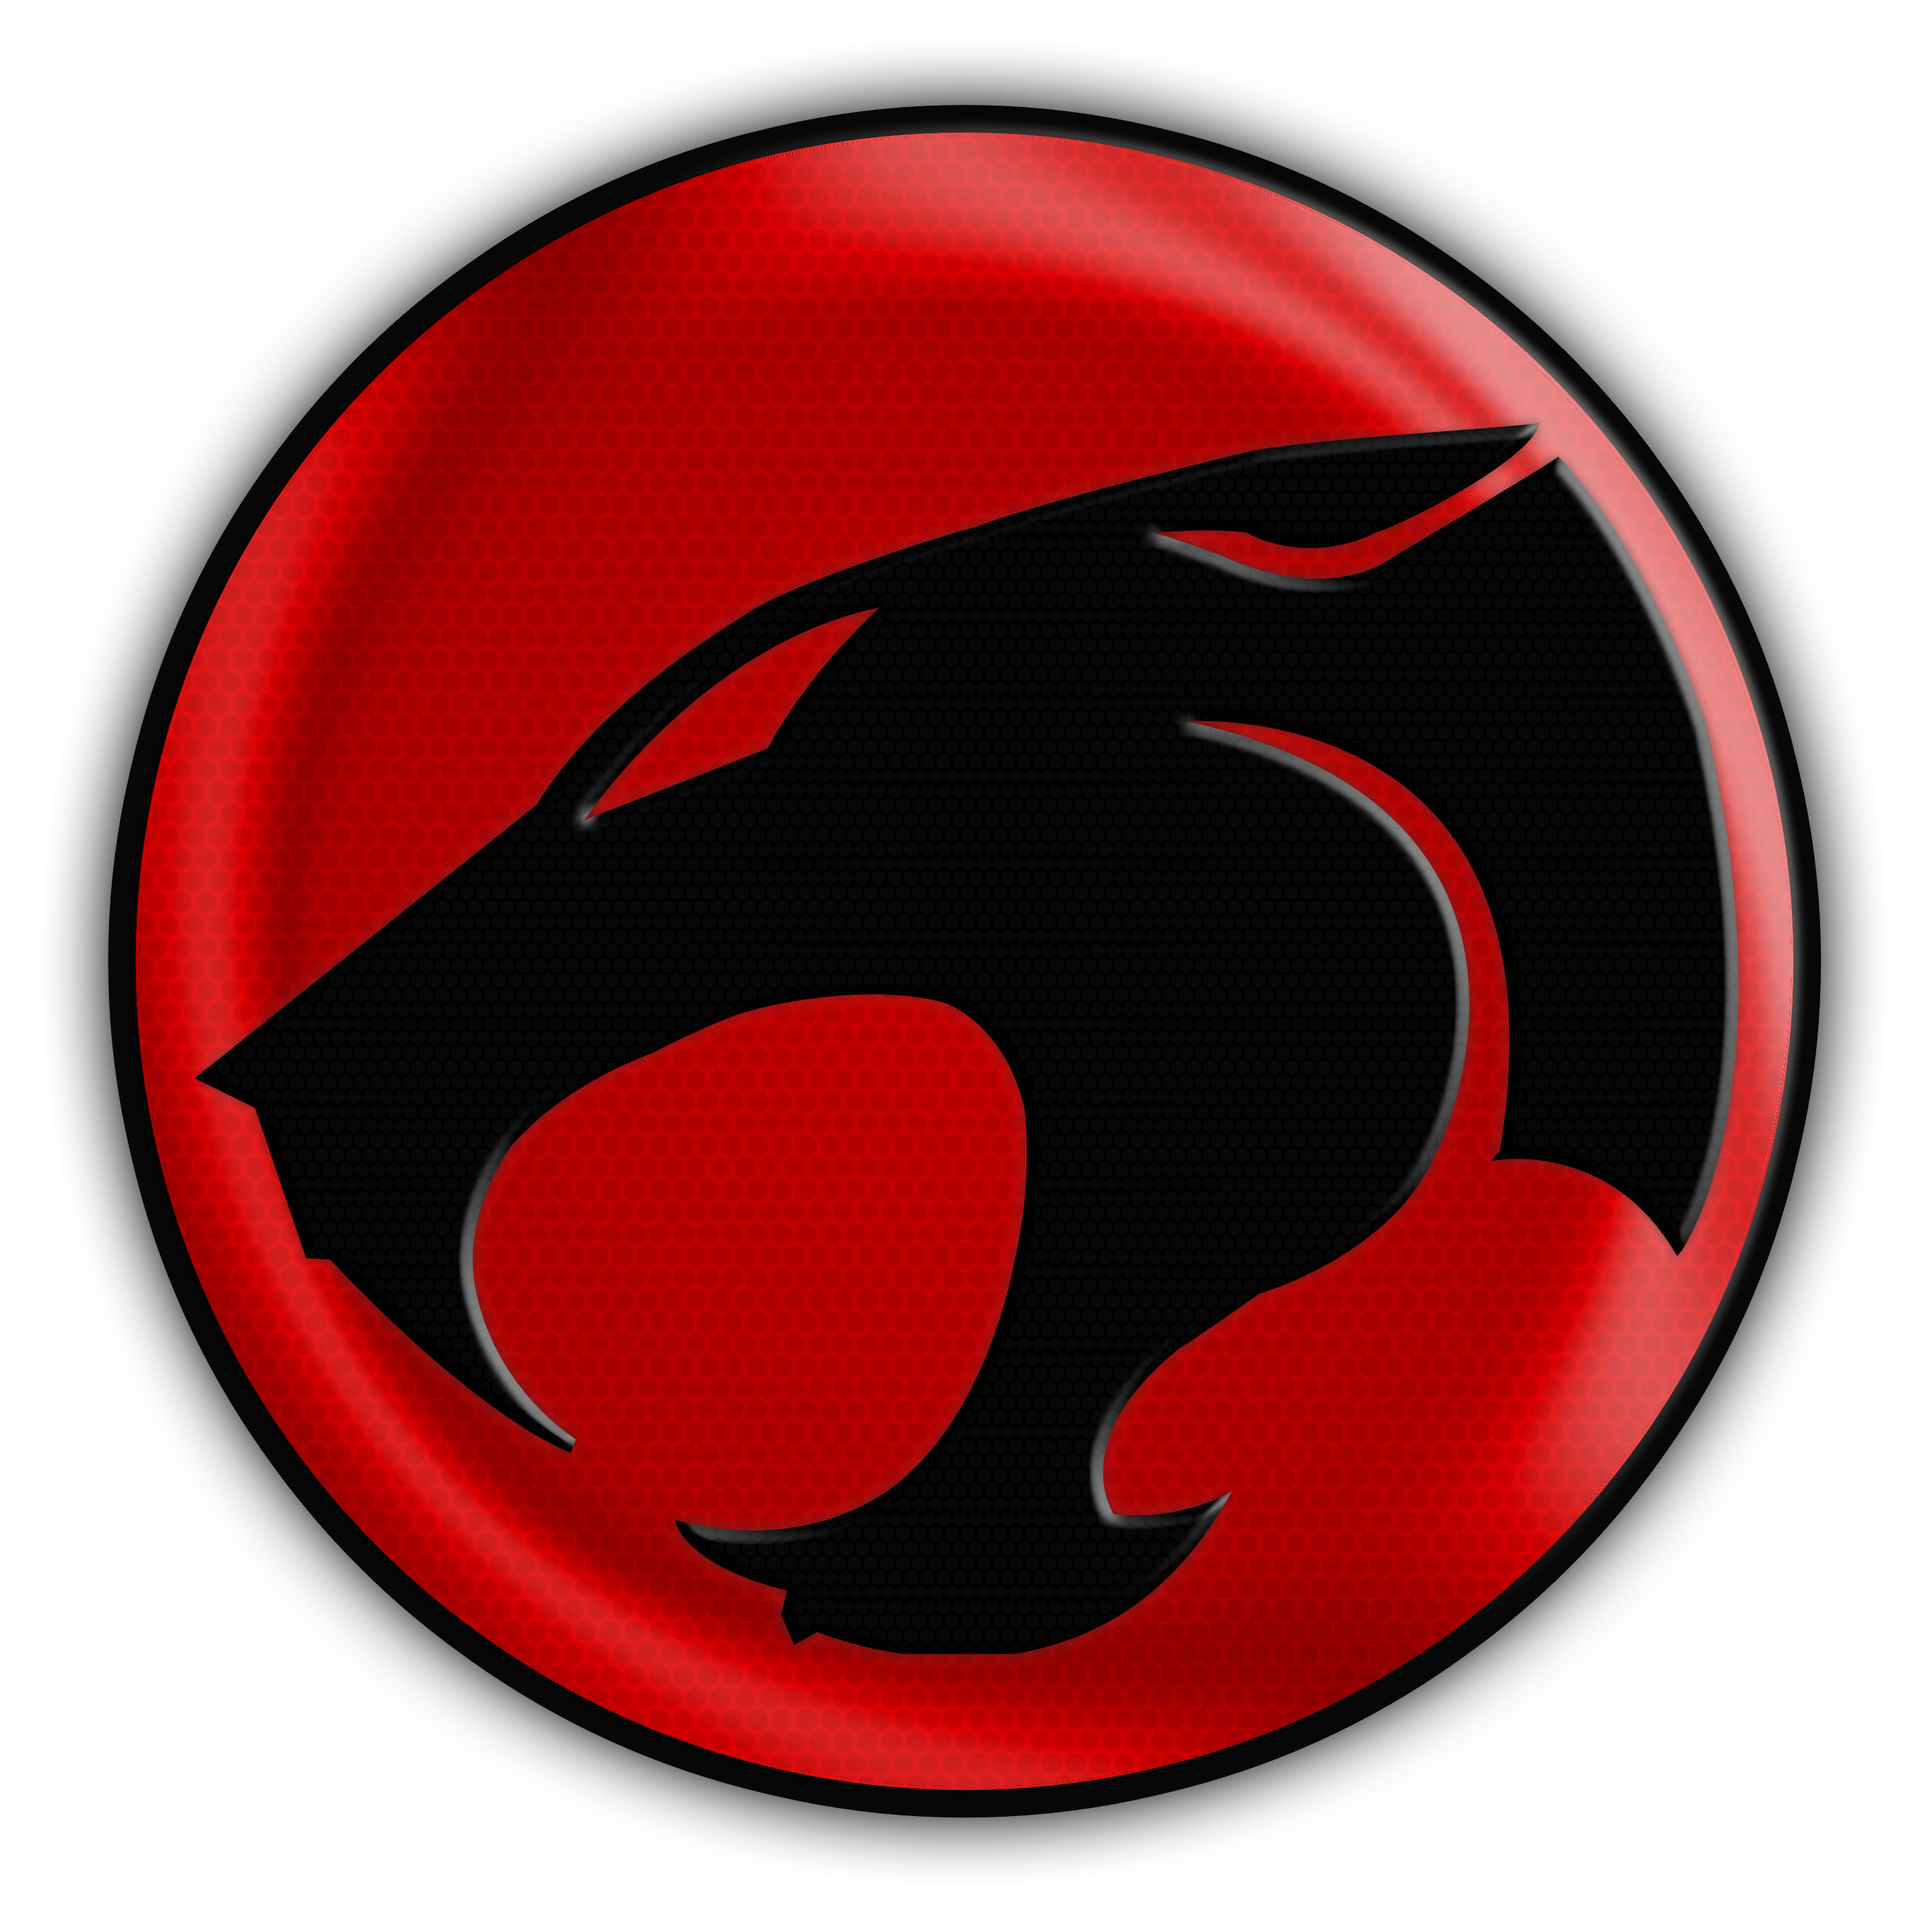 Thunder cat logos thundercats logo by russjericho23 on deviant voltagebd Images